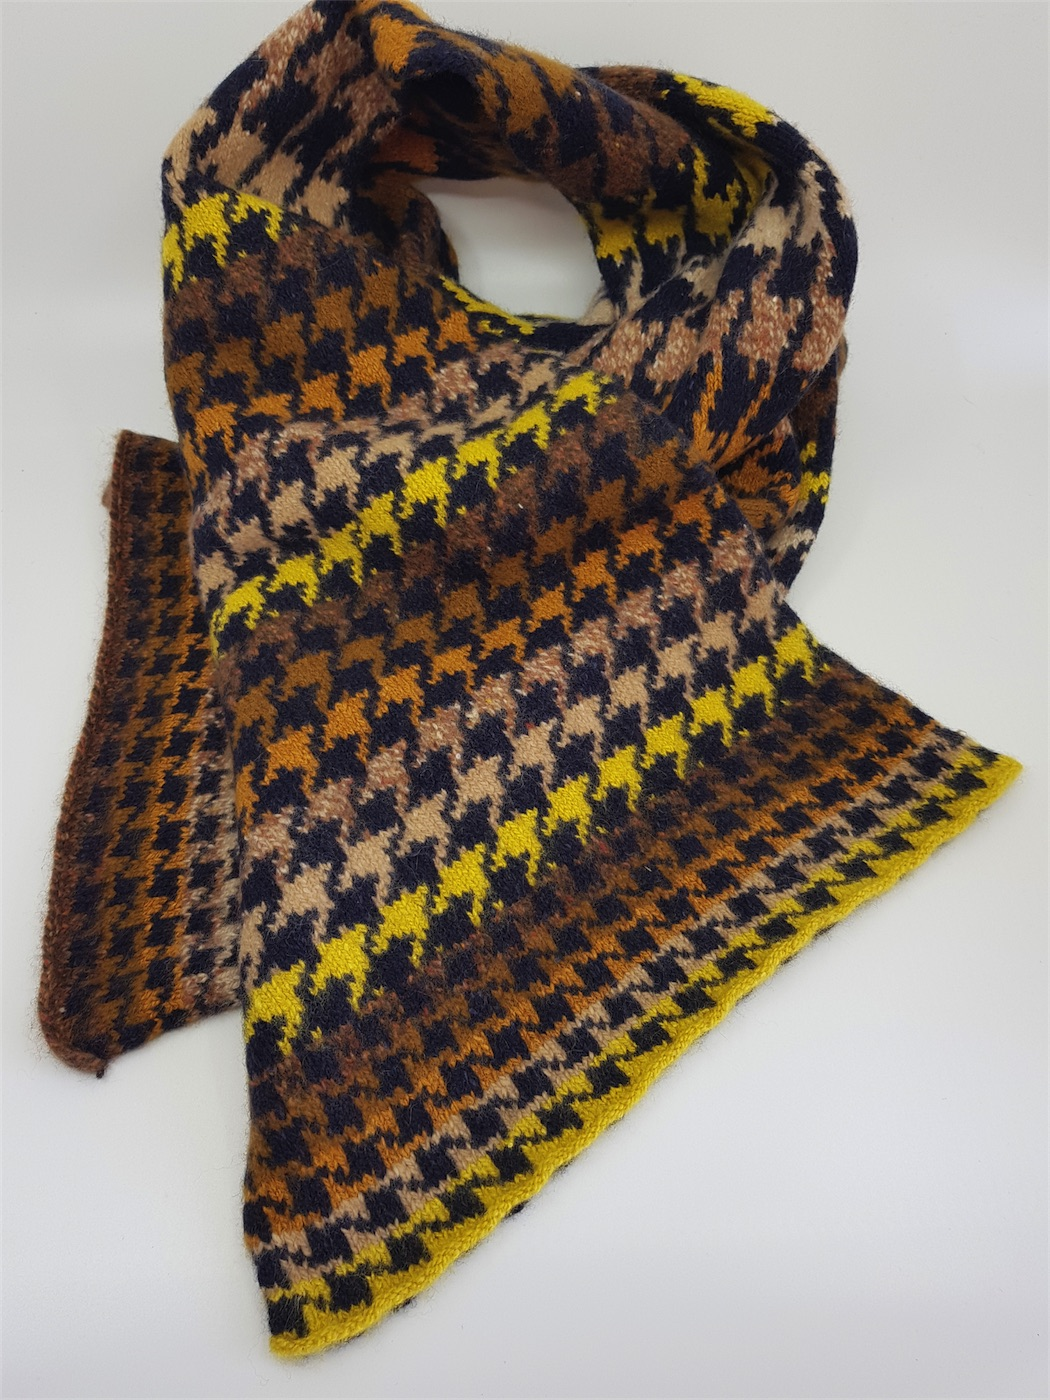 Alison Dupernex AD674 cashmere scarf, houndstooth, £75, W27 x L190 (3)